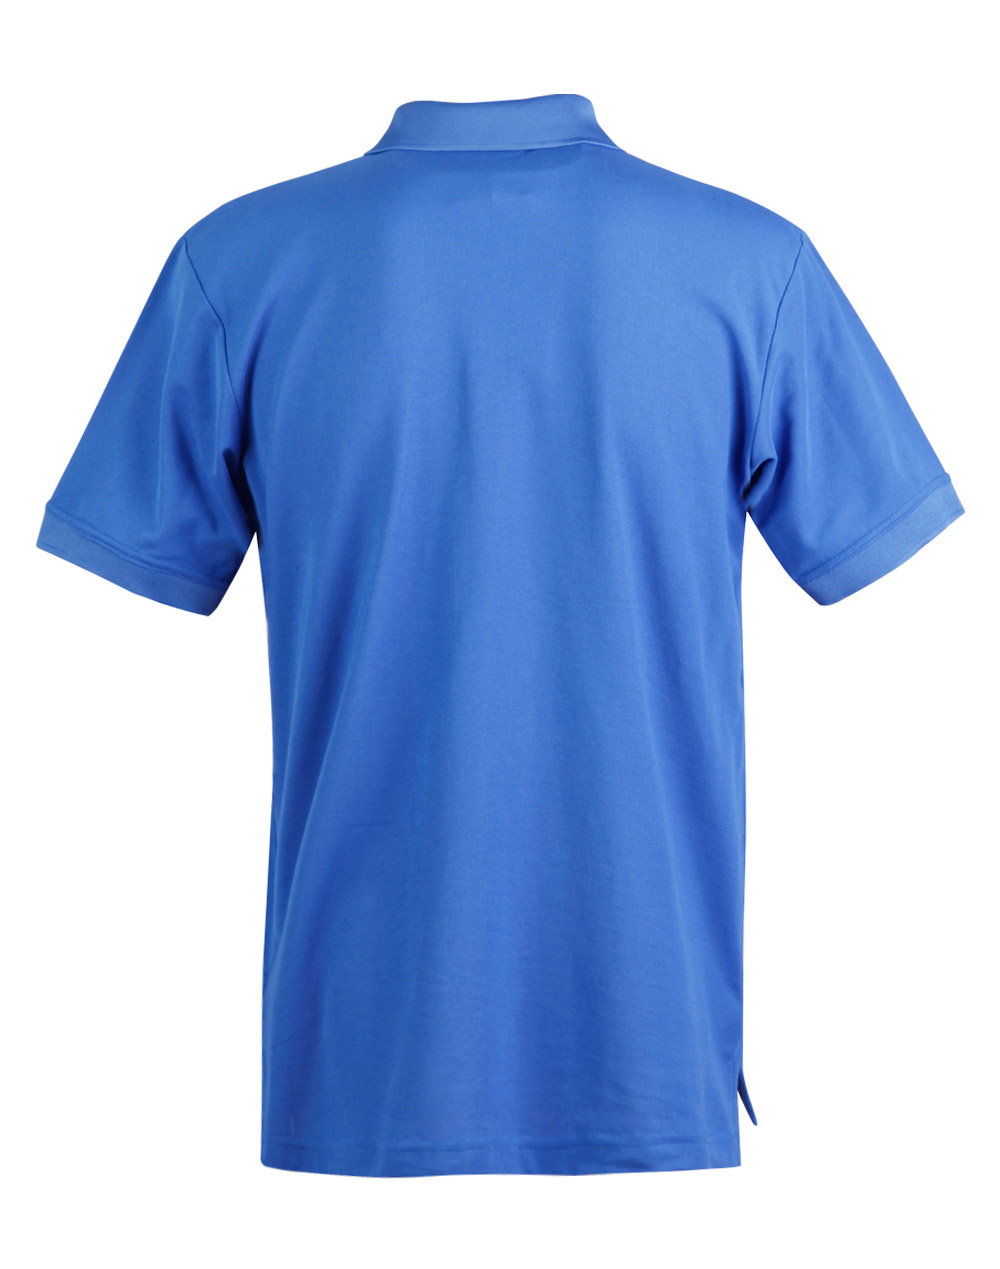 https://s3-ap-southeast-1.amazonaws.com/ws-imgs/POLOSHIRTS/PS63_Royal_Back.jpg